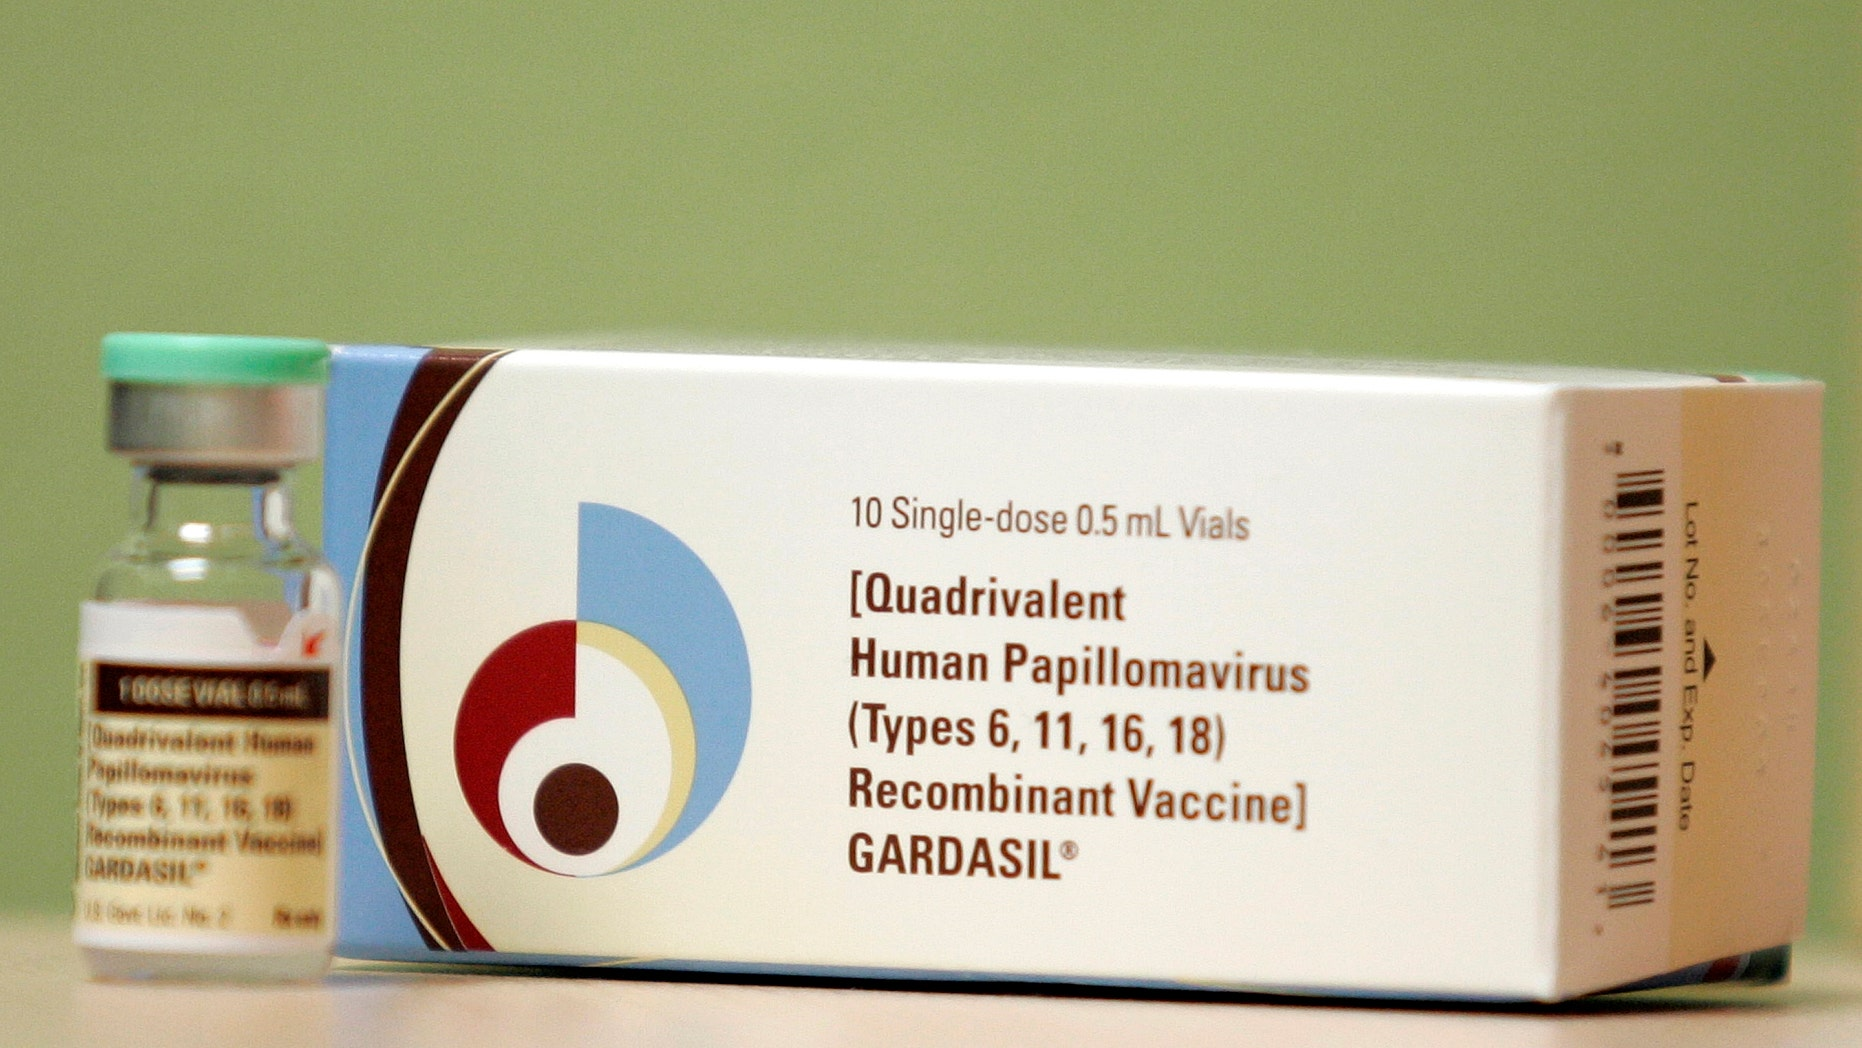 Gardasil, a Human Papillomavirus vaccine, is displayed in Dallas, Texas March 6, 2007. (REUTERS/Jessica Rinaldi)